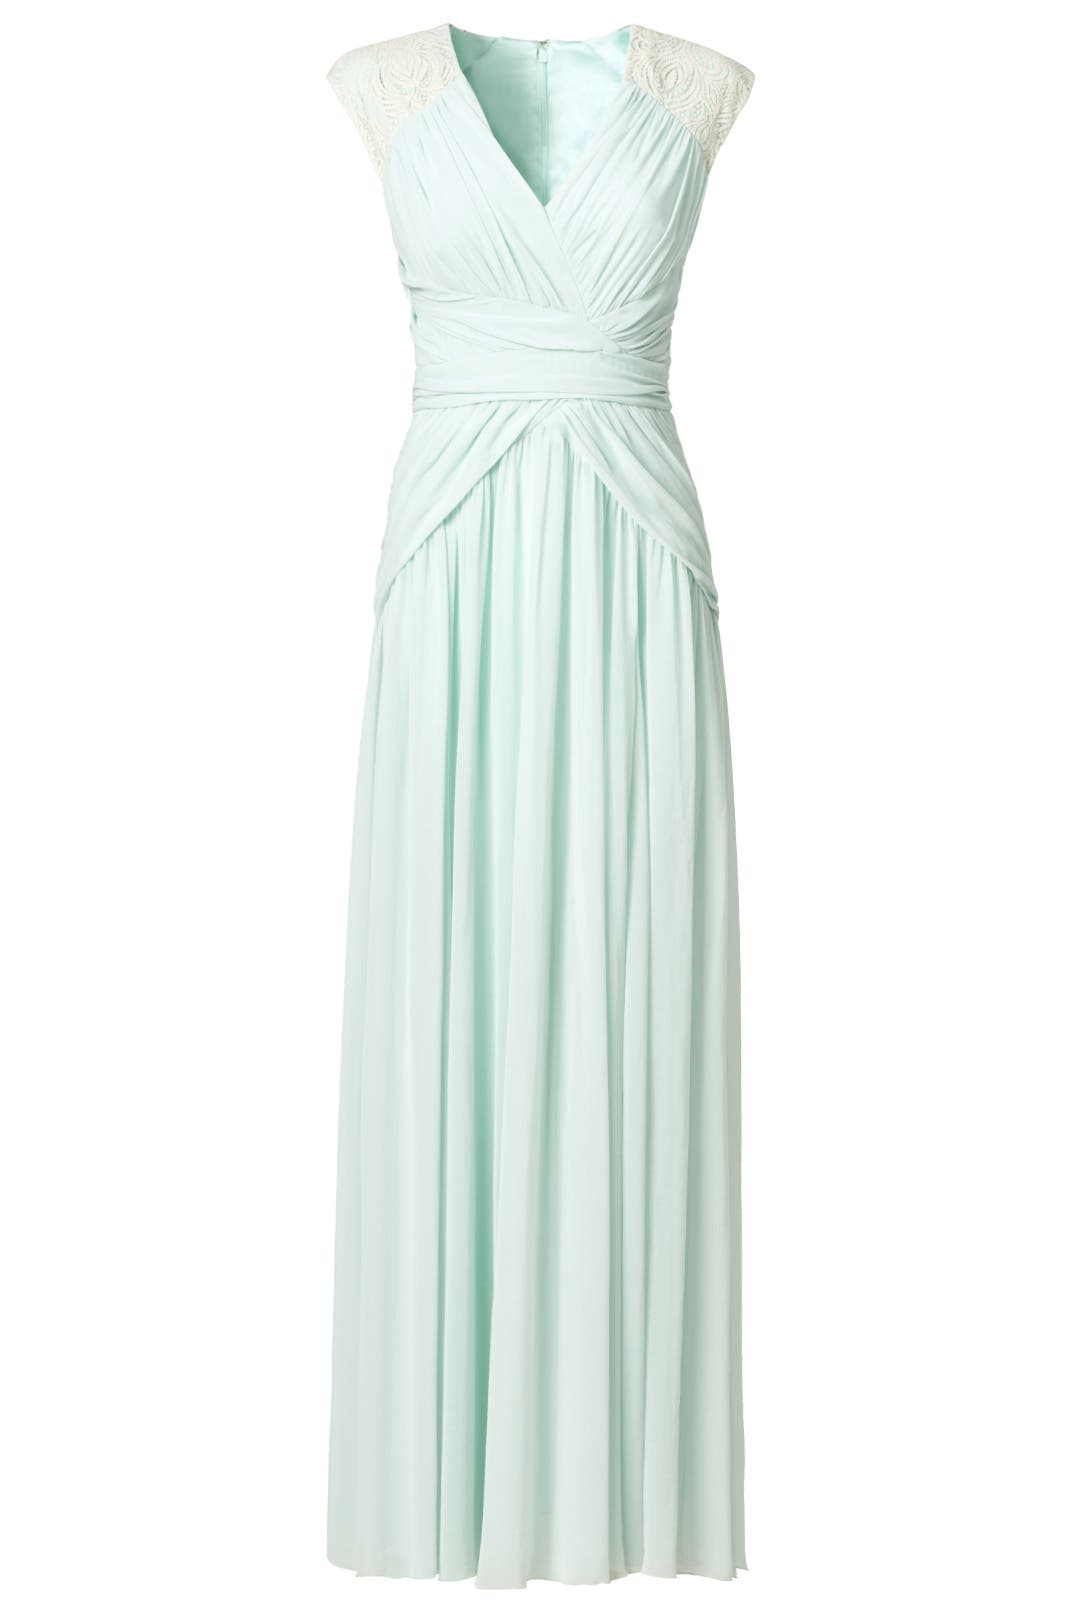 Mint Dream Gown by Badgley Mischka for $70 | Rent the Runway